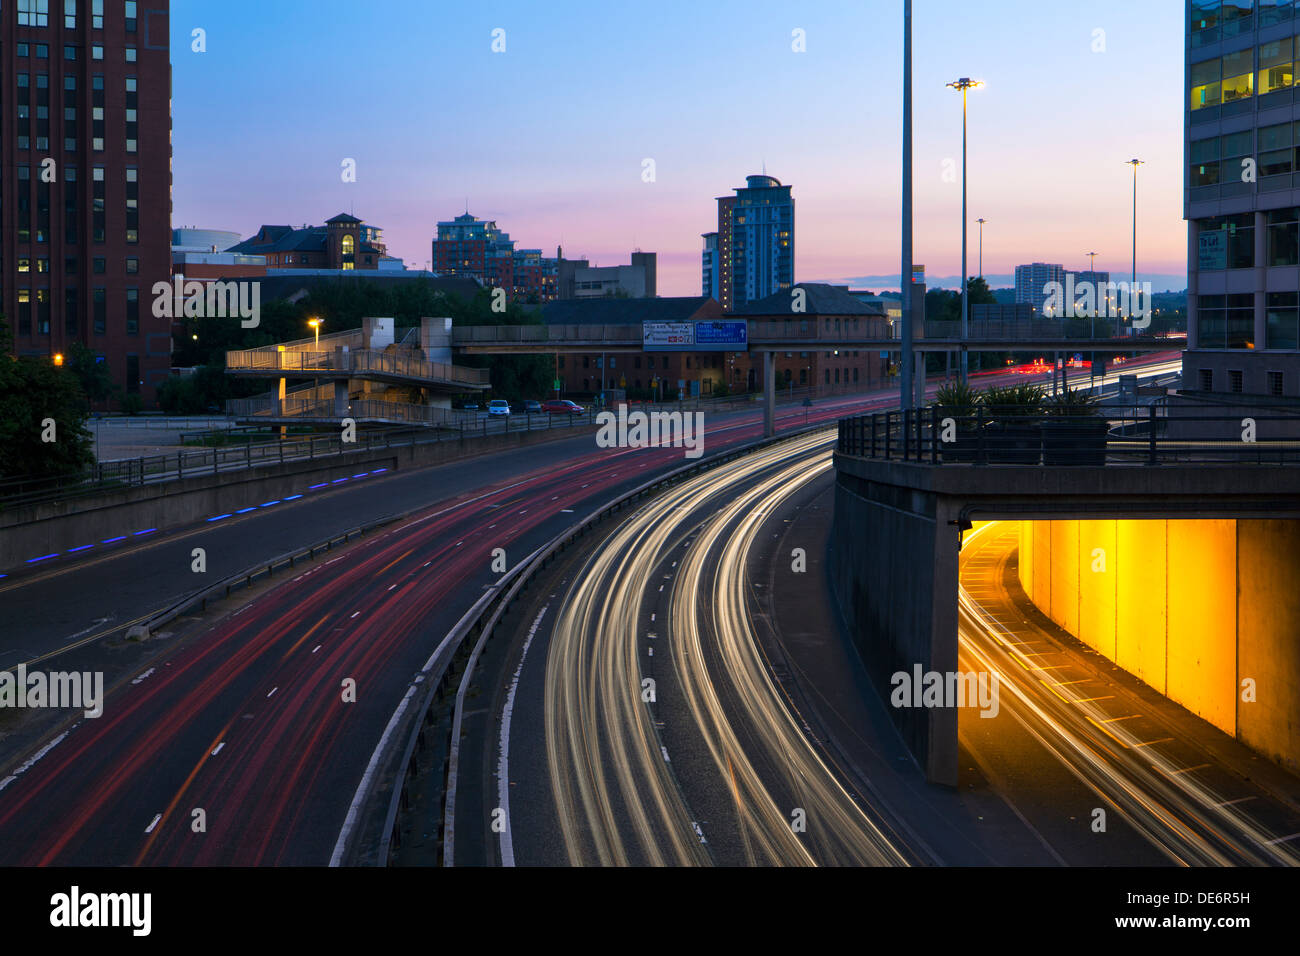 Traffic light trails on the A58 through Leeds, West Yorkshire at Night - Stock Image